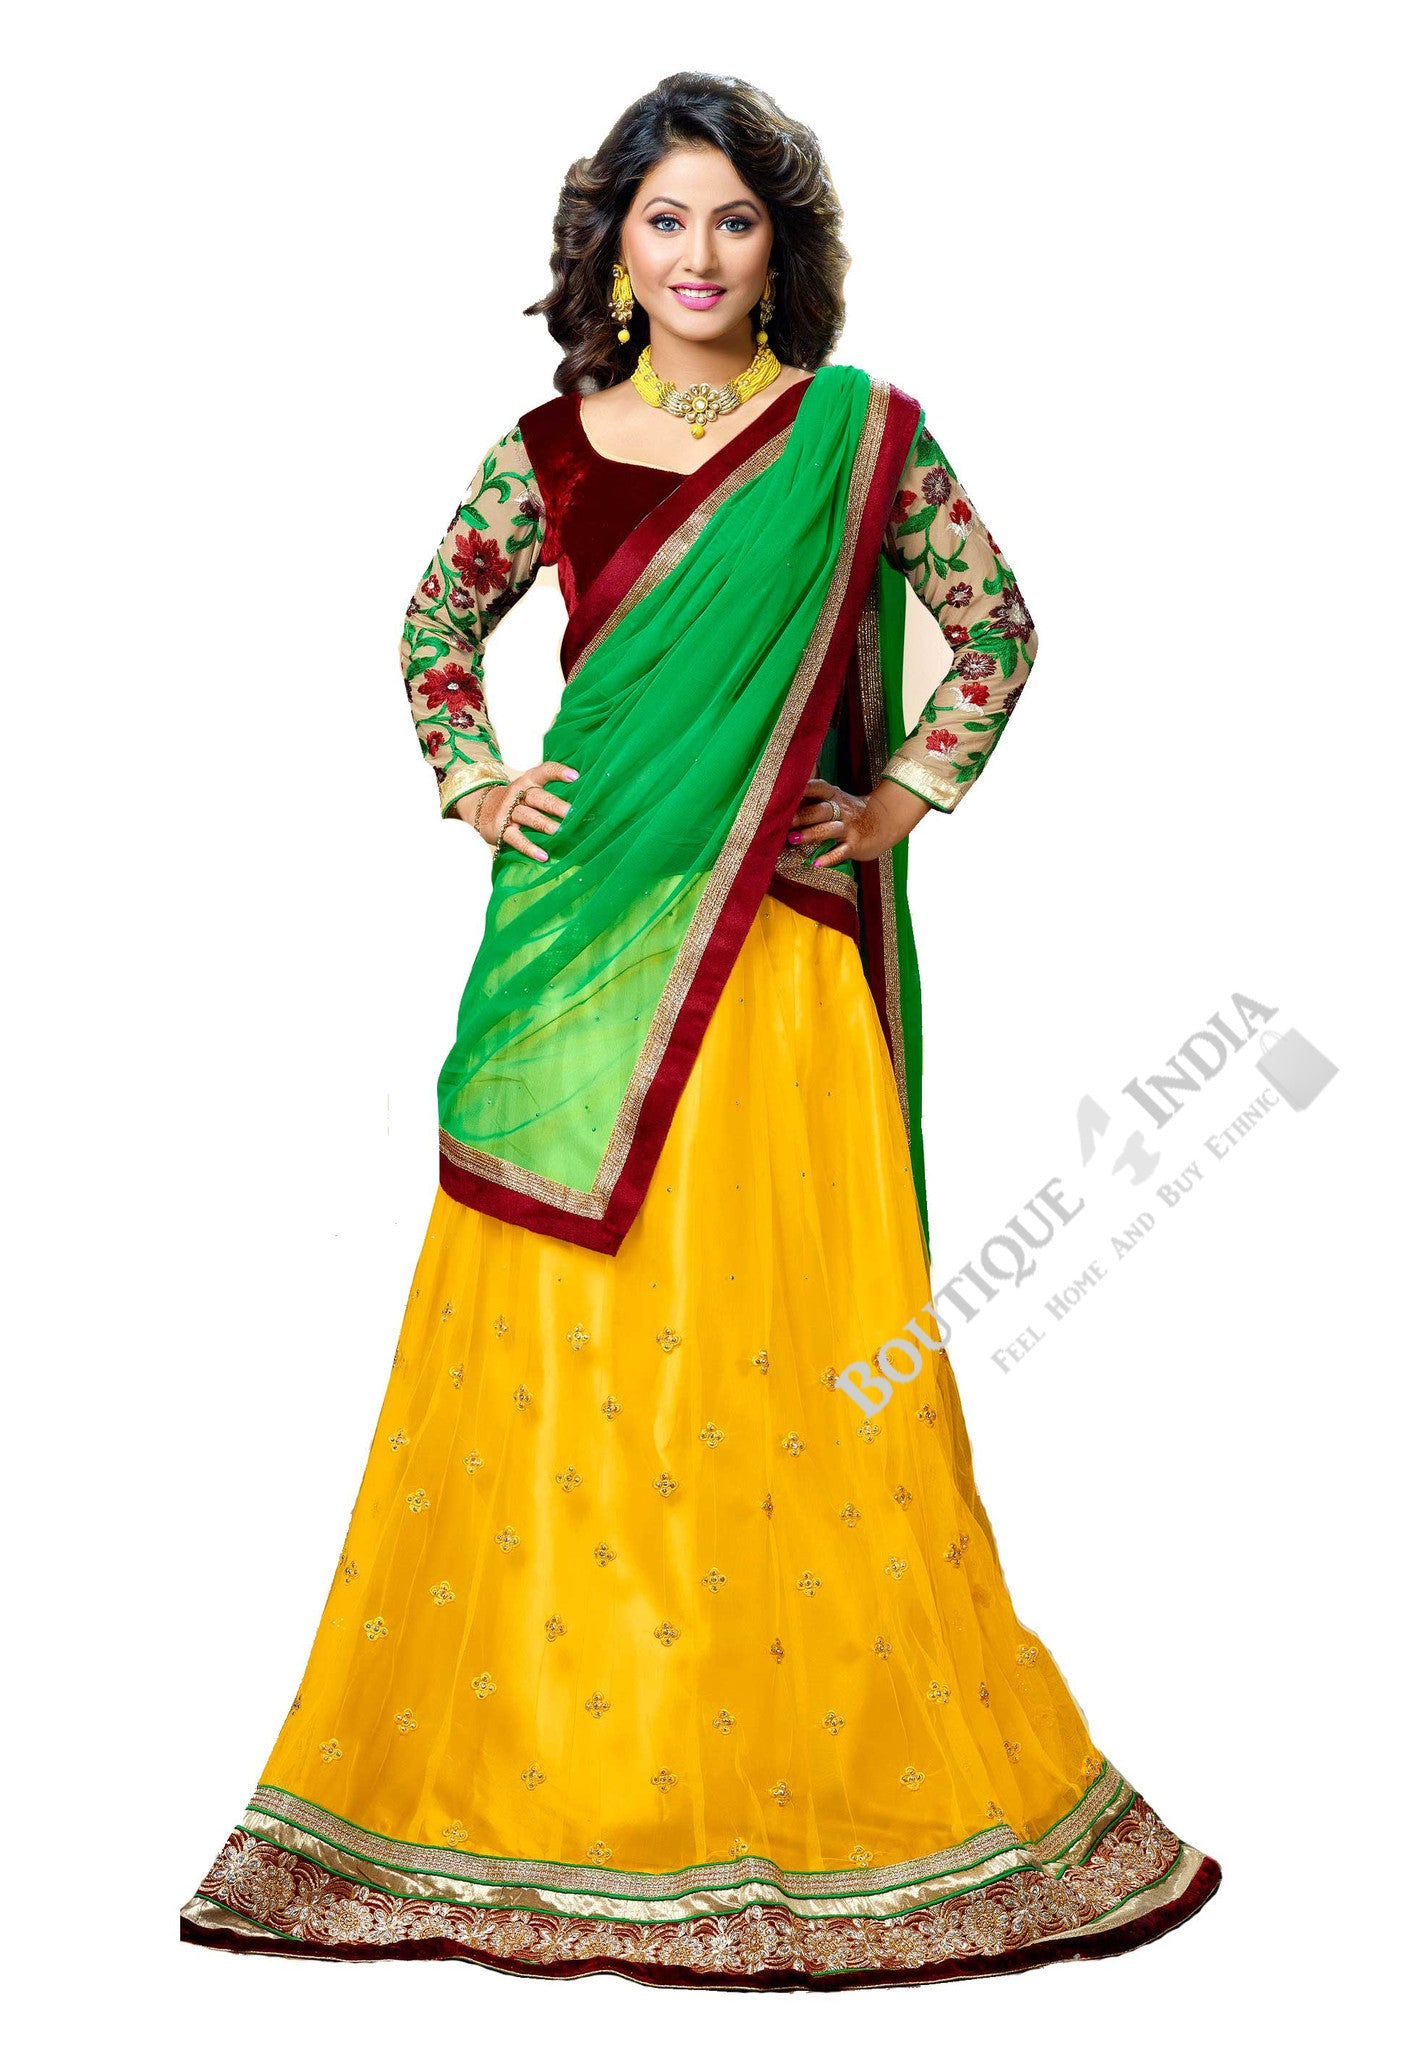 Lehengas - Attractive Heavy Work Designer Lehenga Collection - Velvet Maroon, Green, Yellow And Golden Most Beautiful 3 Piece Semi Stitched Lehenga Collection For Party / Wedding / Special Occasions - Semi Stitched, Blouse - Ready to Stitch - Boutique4India Inc.